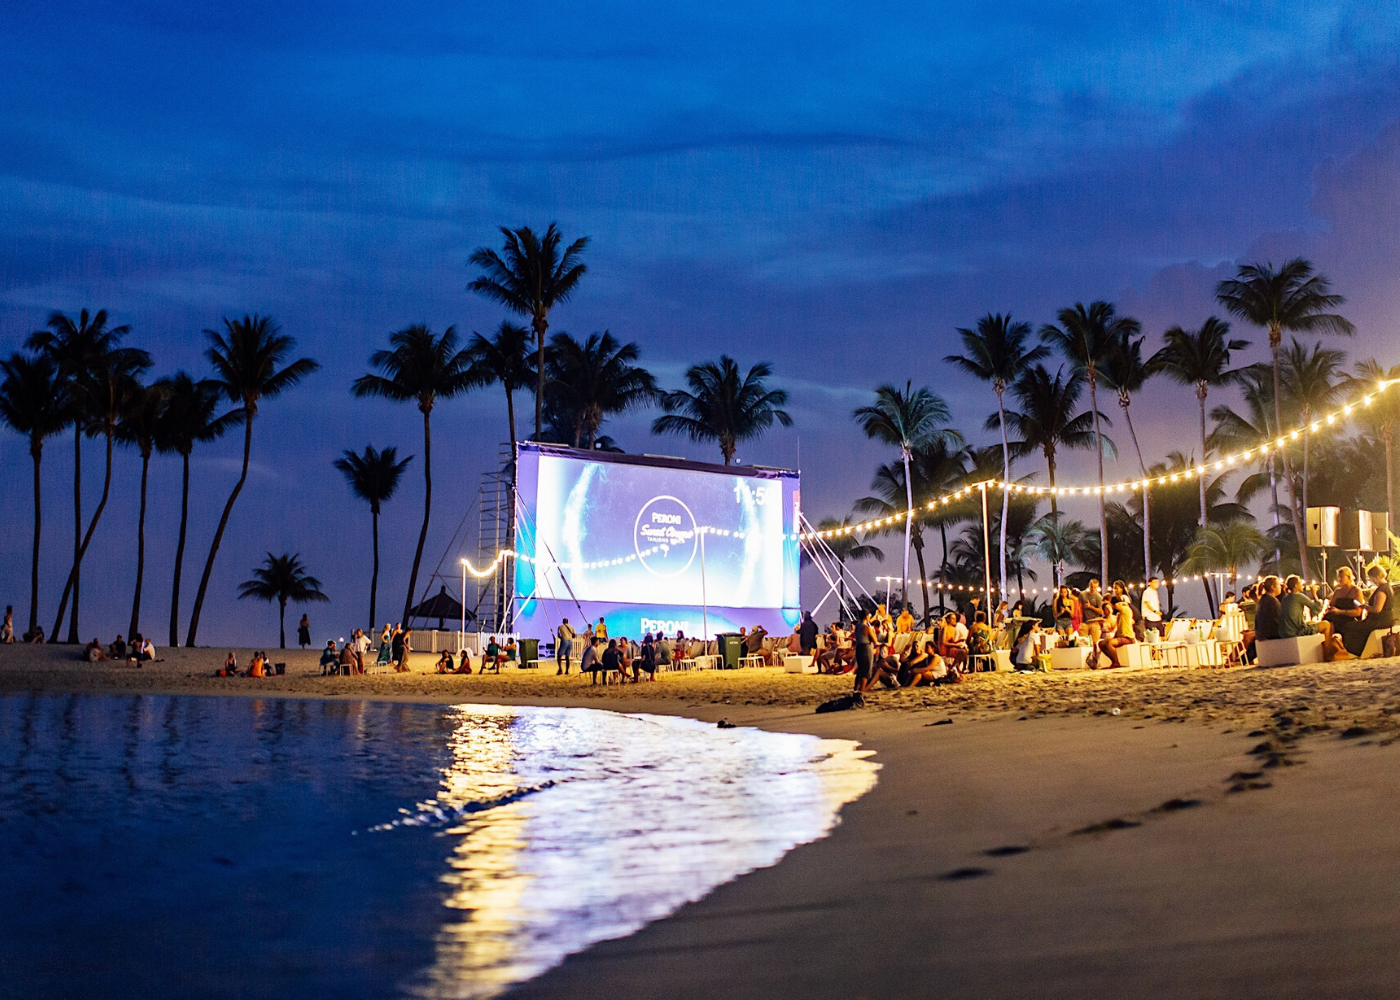 outdoor cinema by the beach